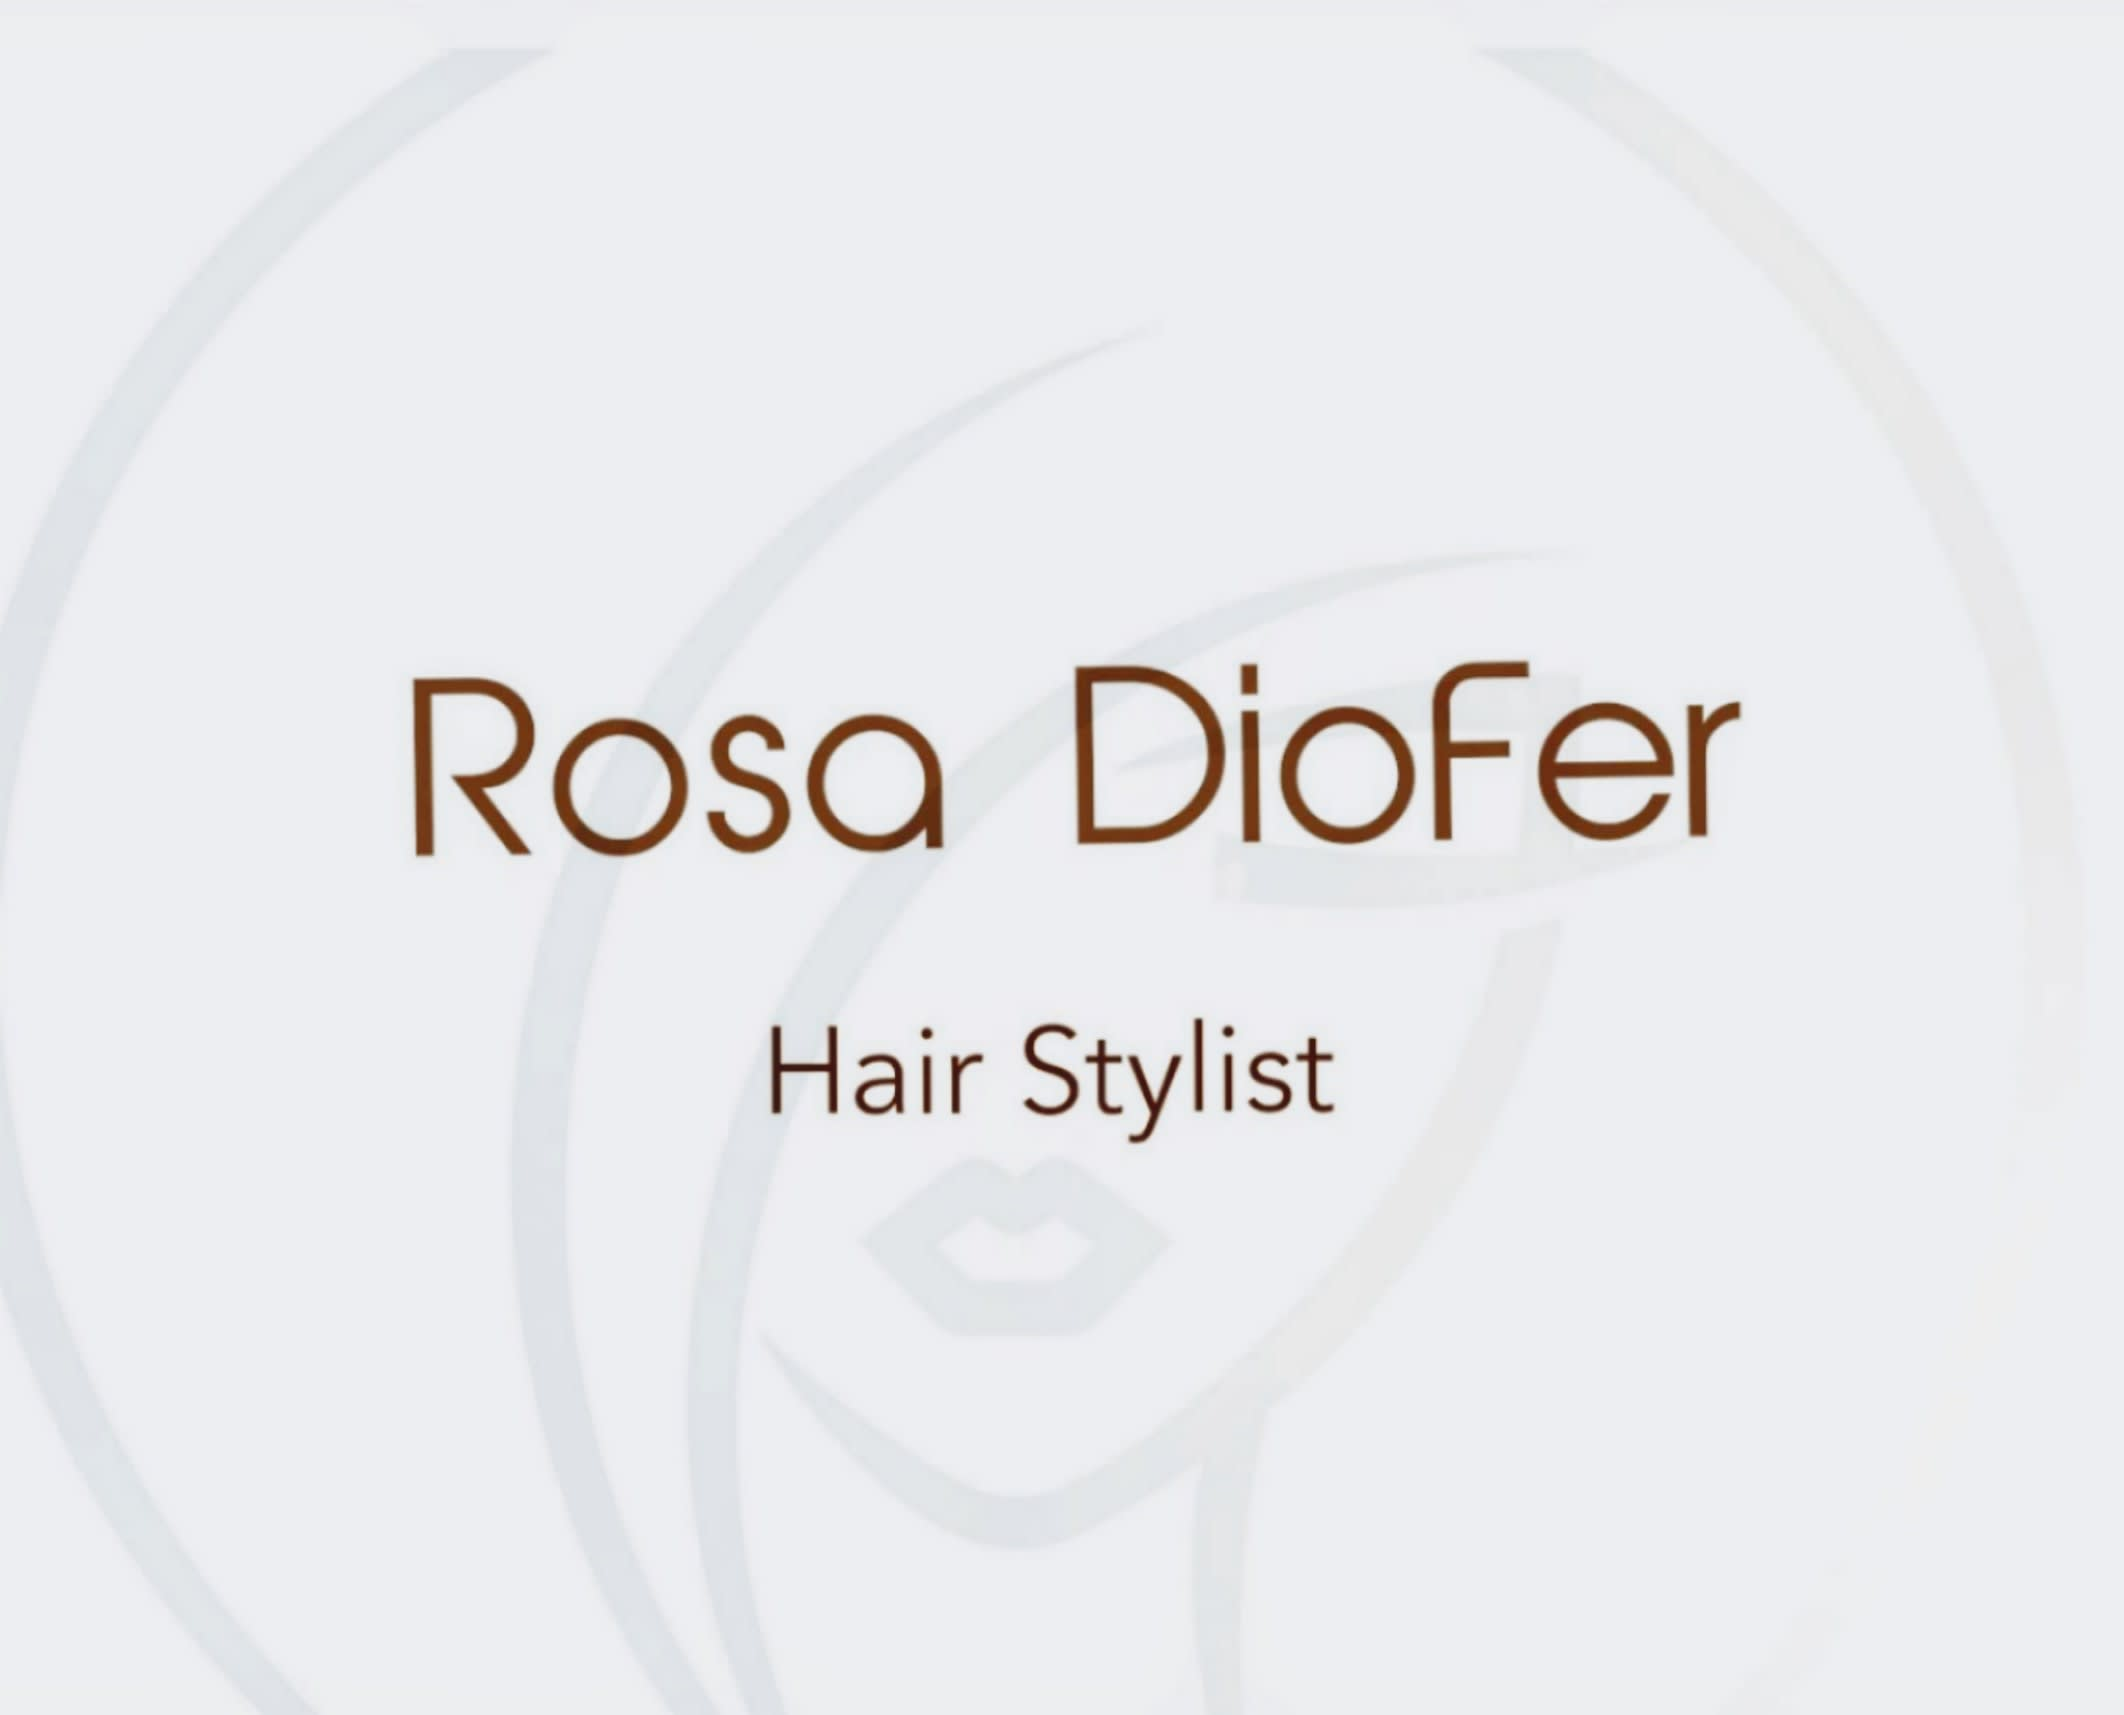 Rosa Diofer Hair Stylist